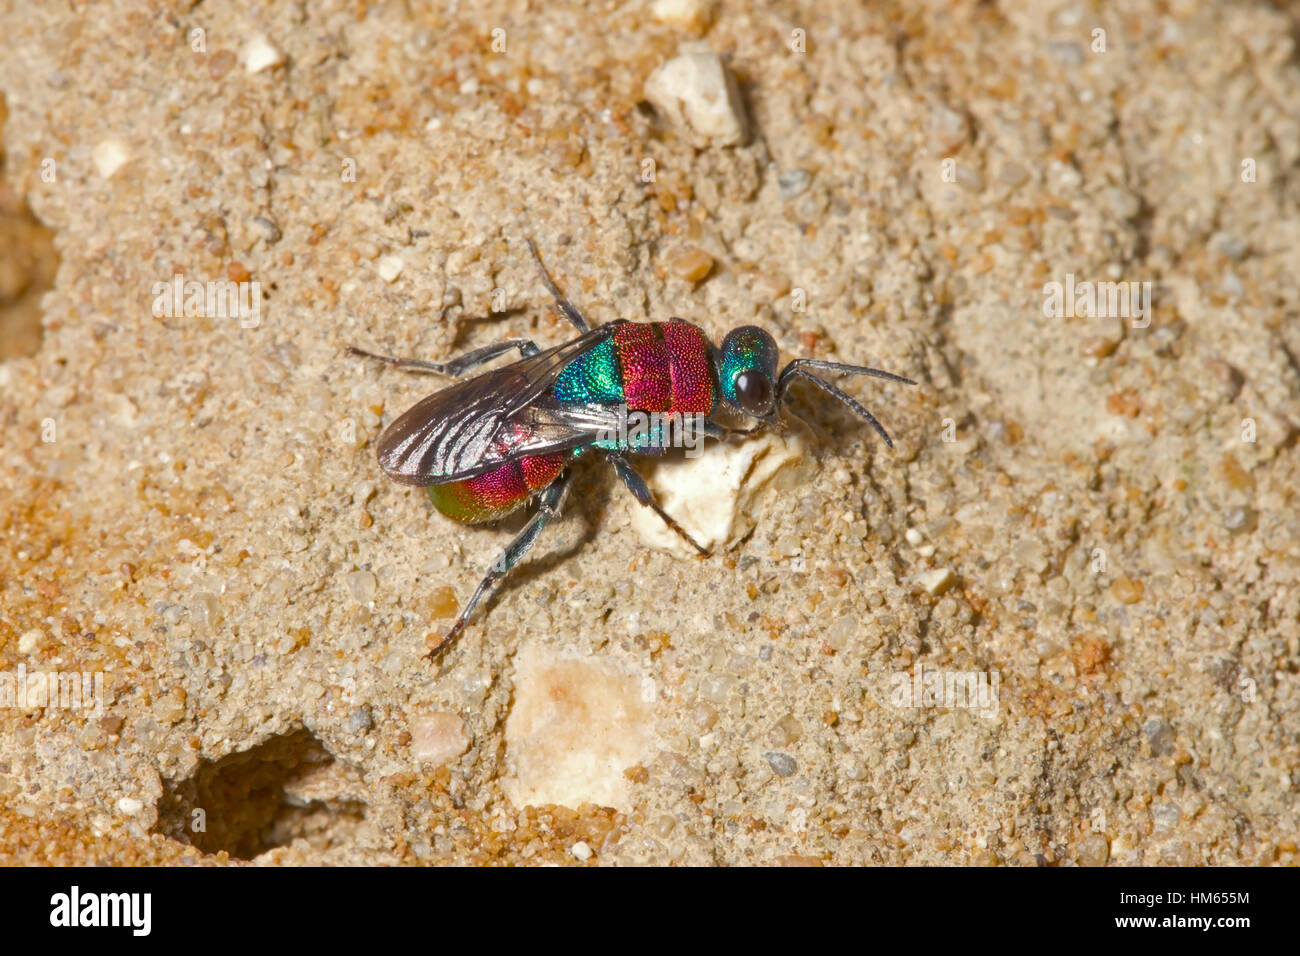 Jewel or Ruby-tailed Wasp - Hedychrum niemelai - female near burrow of Cerceris arenaria, one of its host species - Stock Image